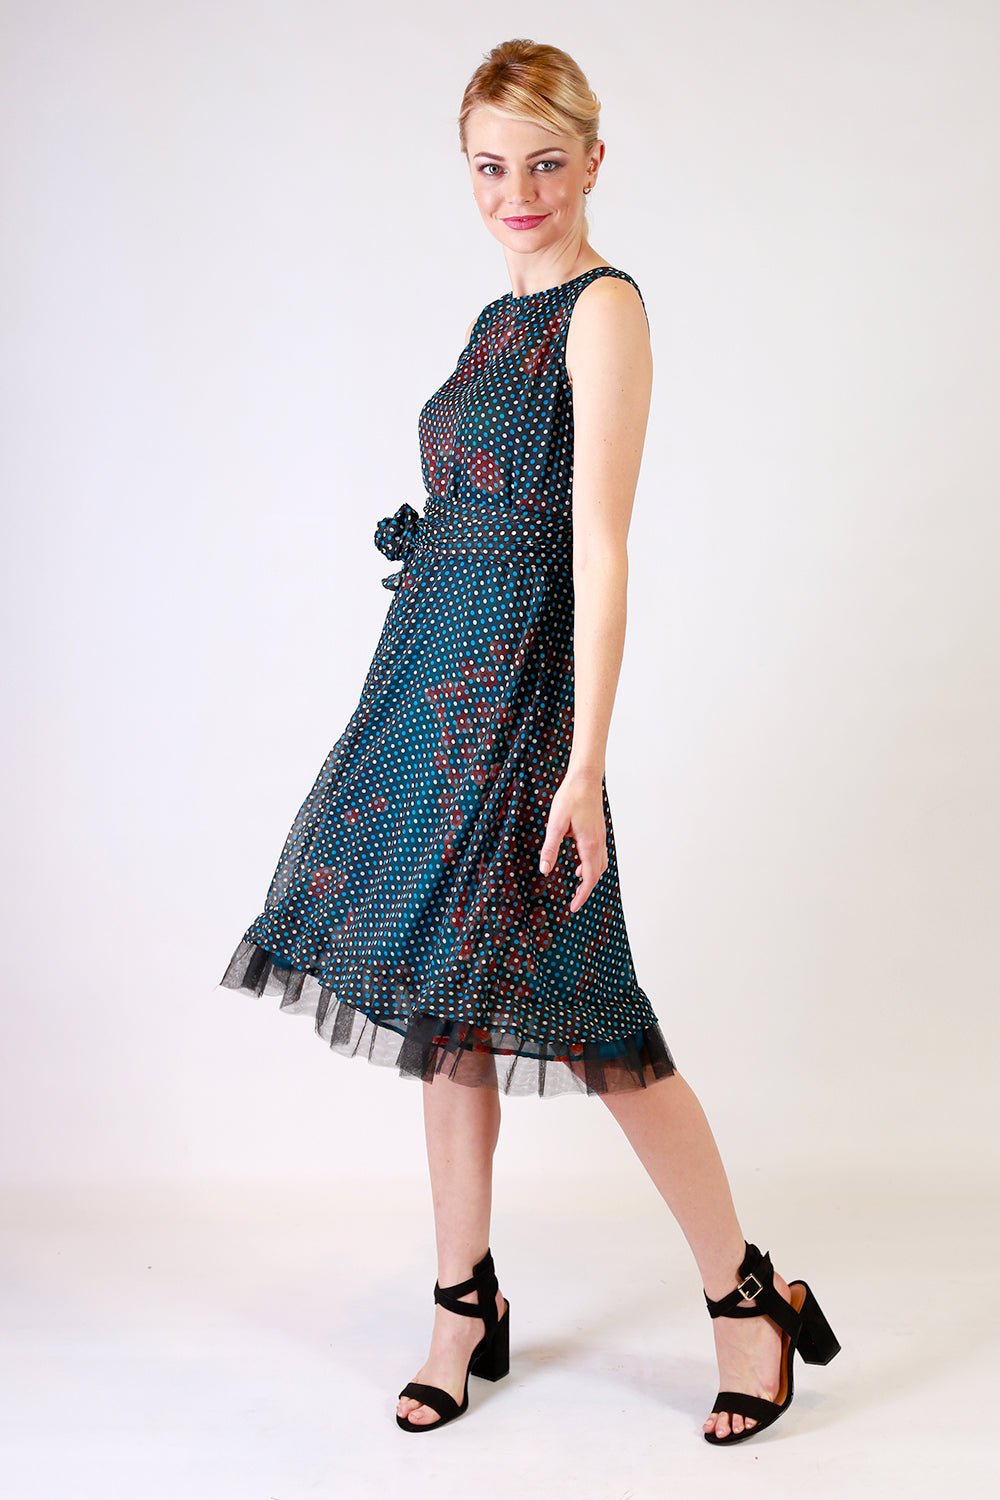 Address Unknown Flipit Wrap Dress | Wrap Around Dress | Take the Cake – Events 19/20 Annah Stretton Fashion NZ